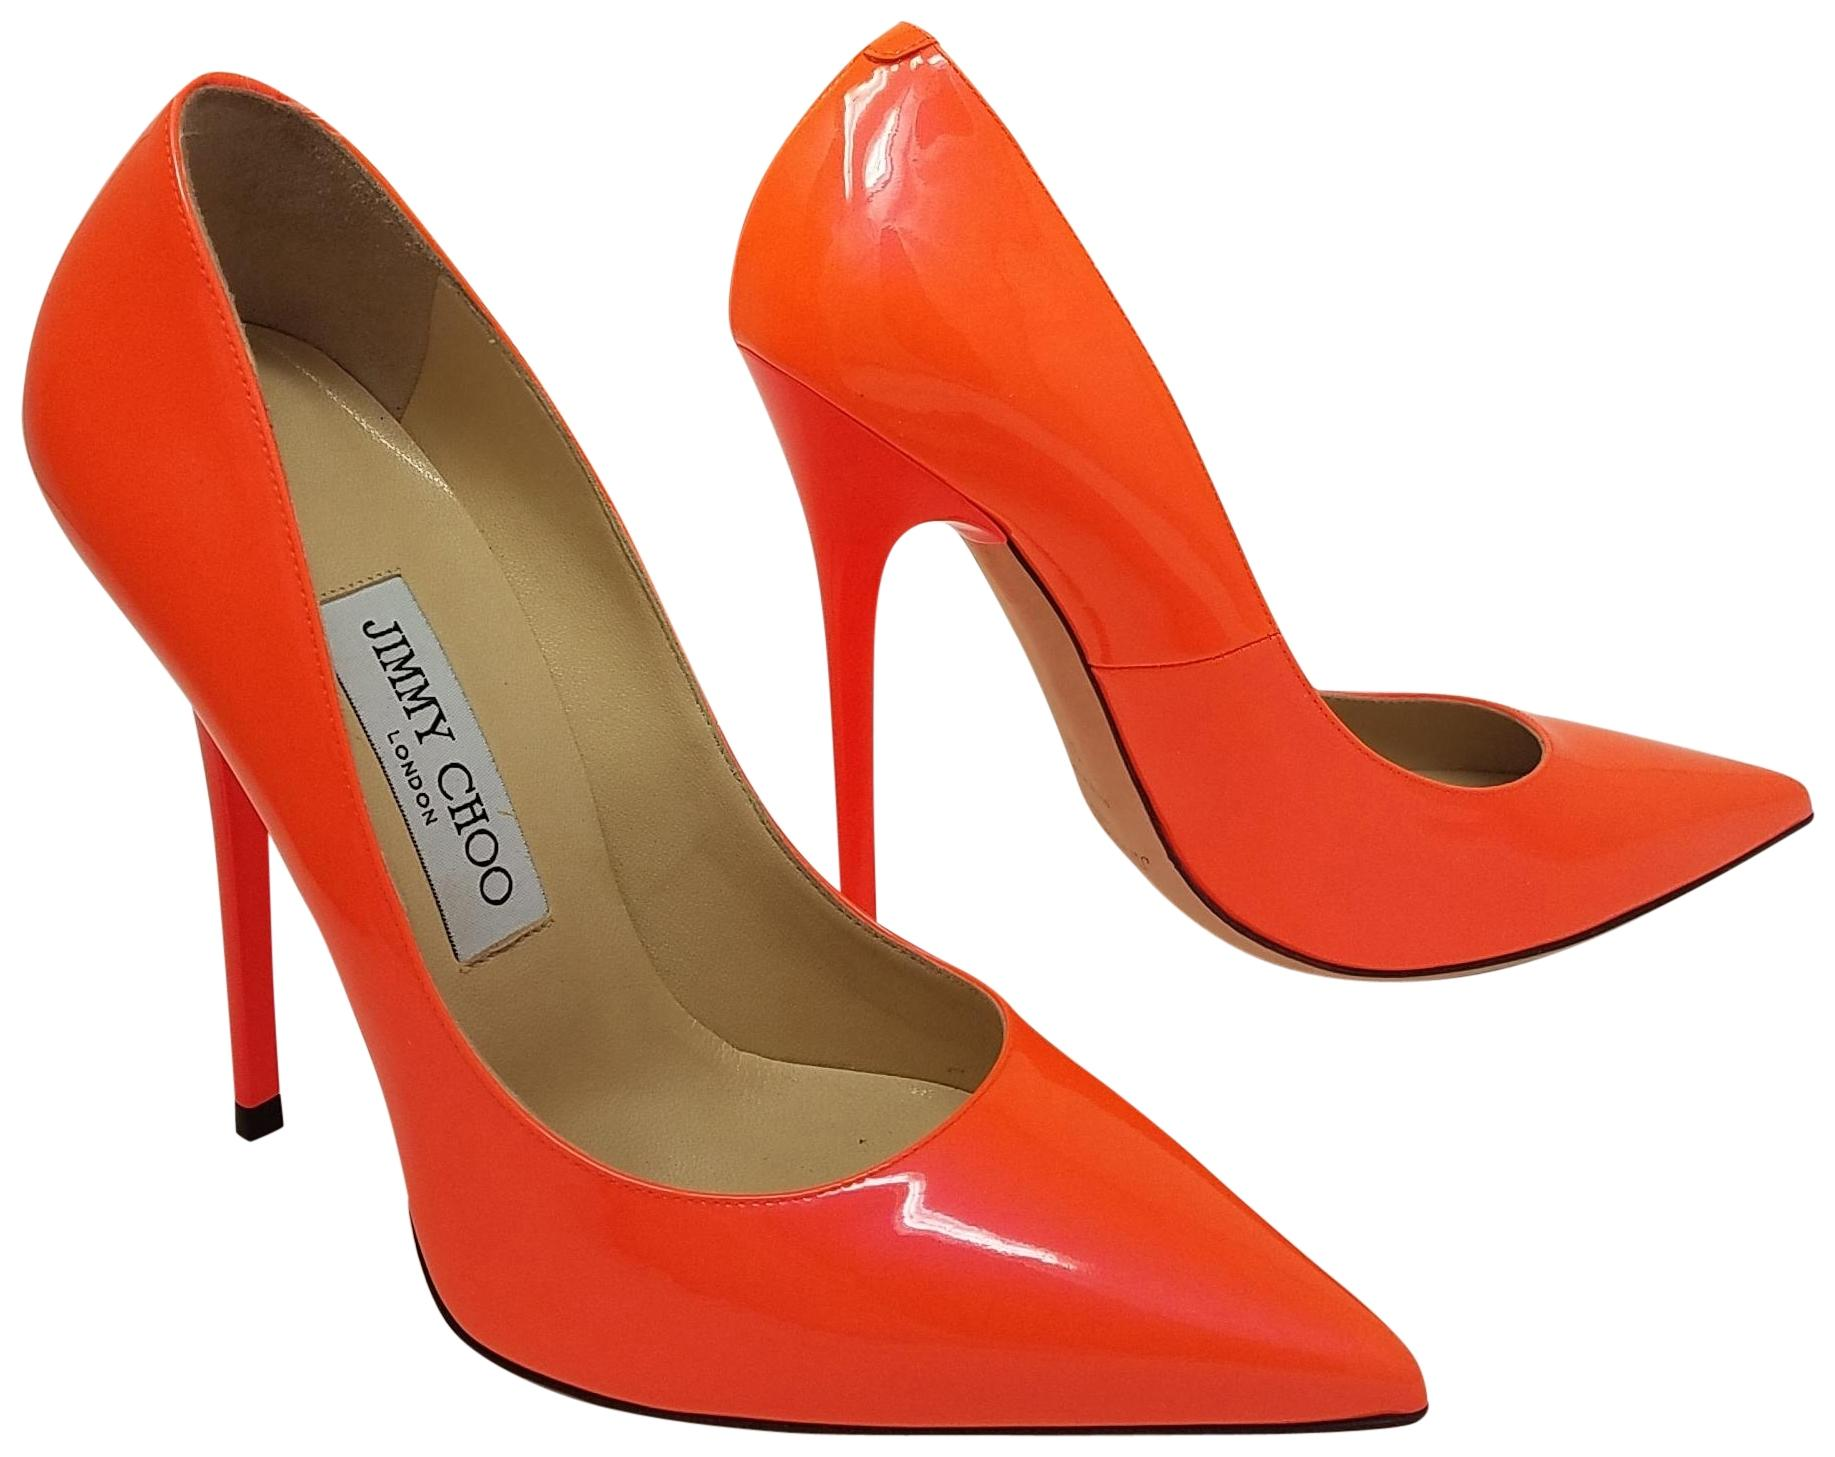 c8725cfe644 ... netherlands jimmy choo pointed toe crystal abel anouk patent leather  orange red pumps b1ccb 9dc47